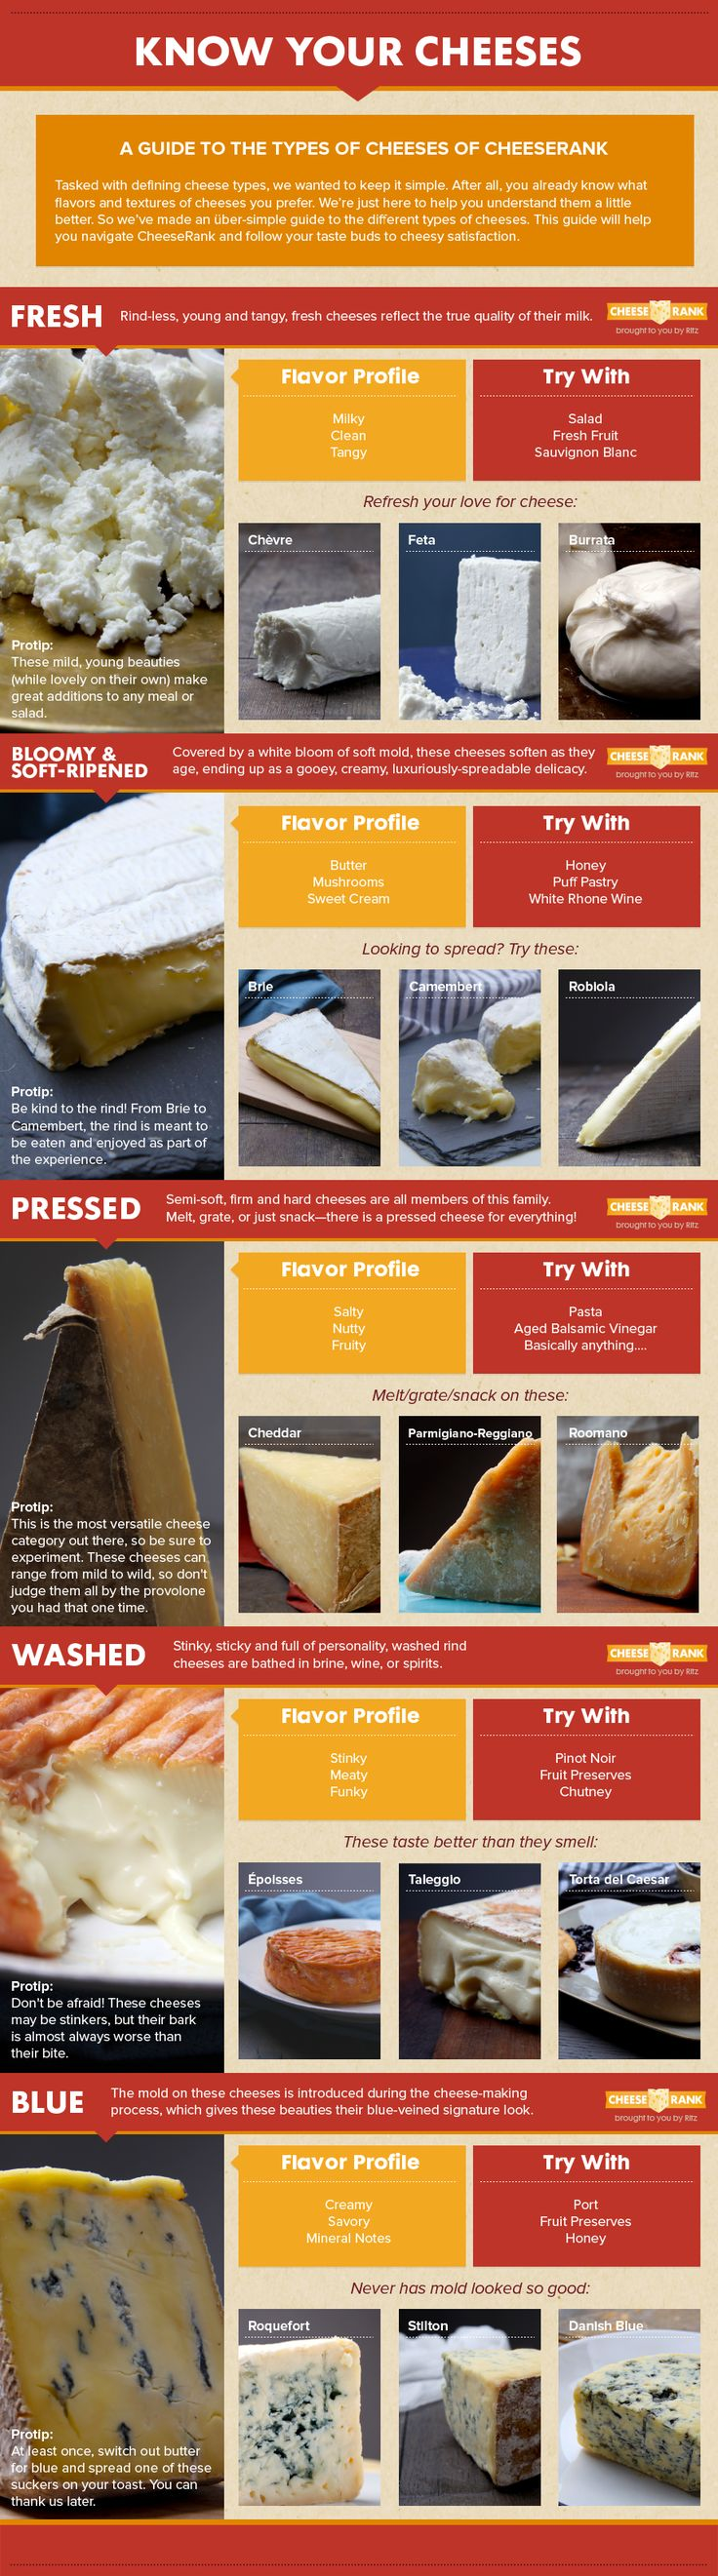 Understanding cheese shouldn't be difficult. Know your cheeses with this simple and easy infograph.